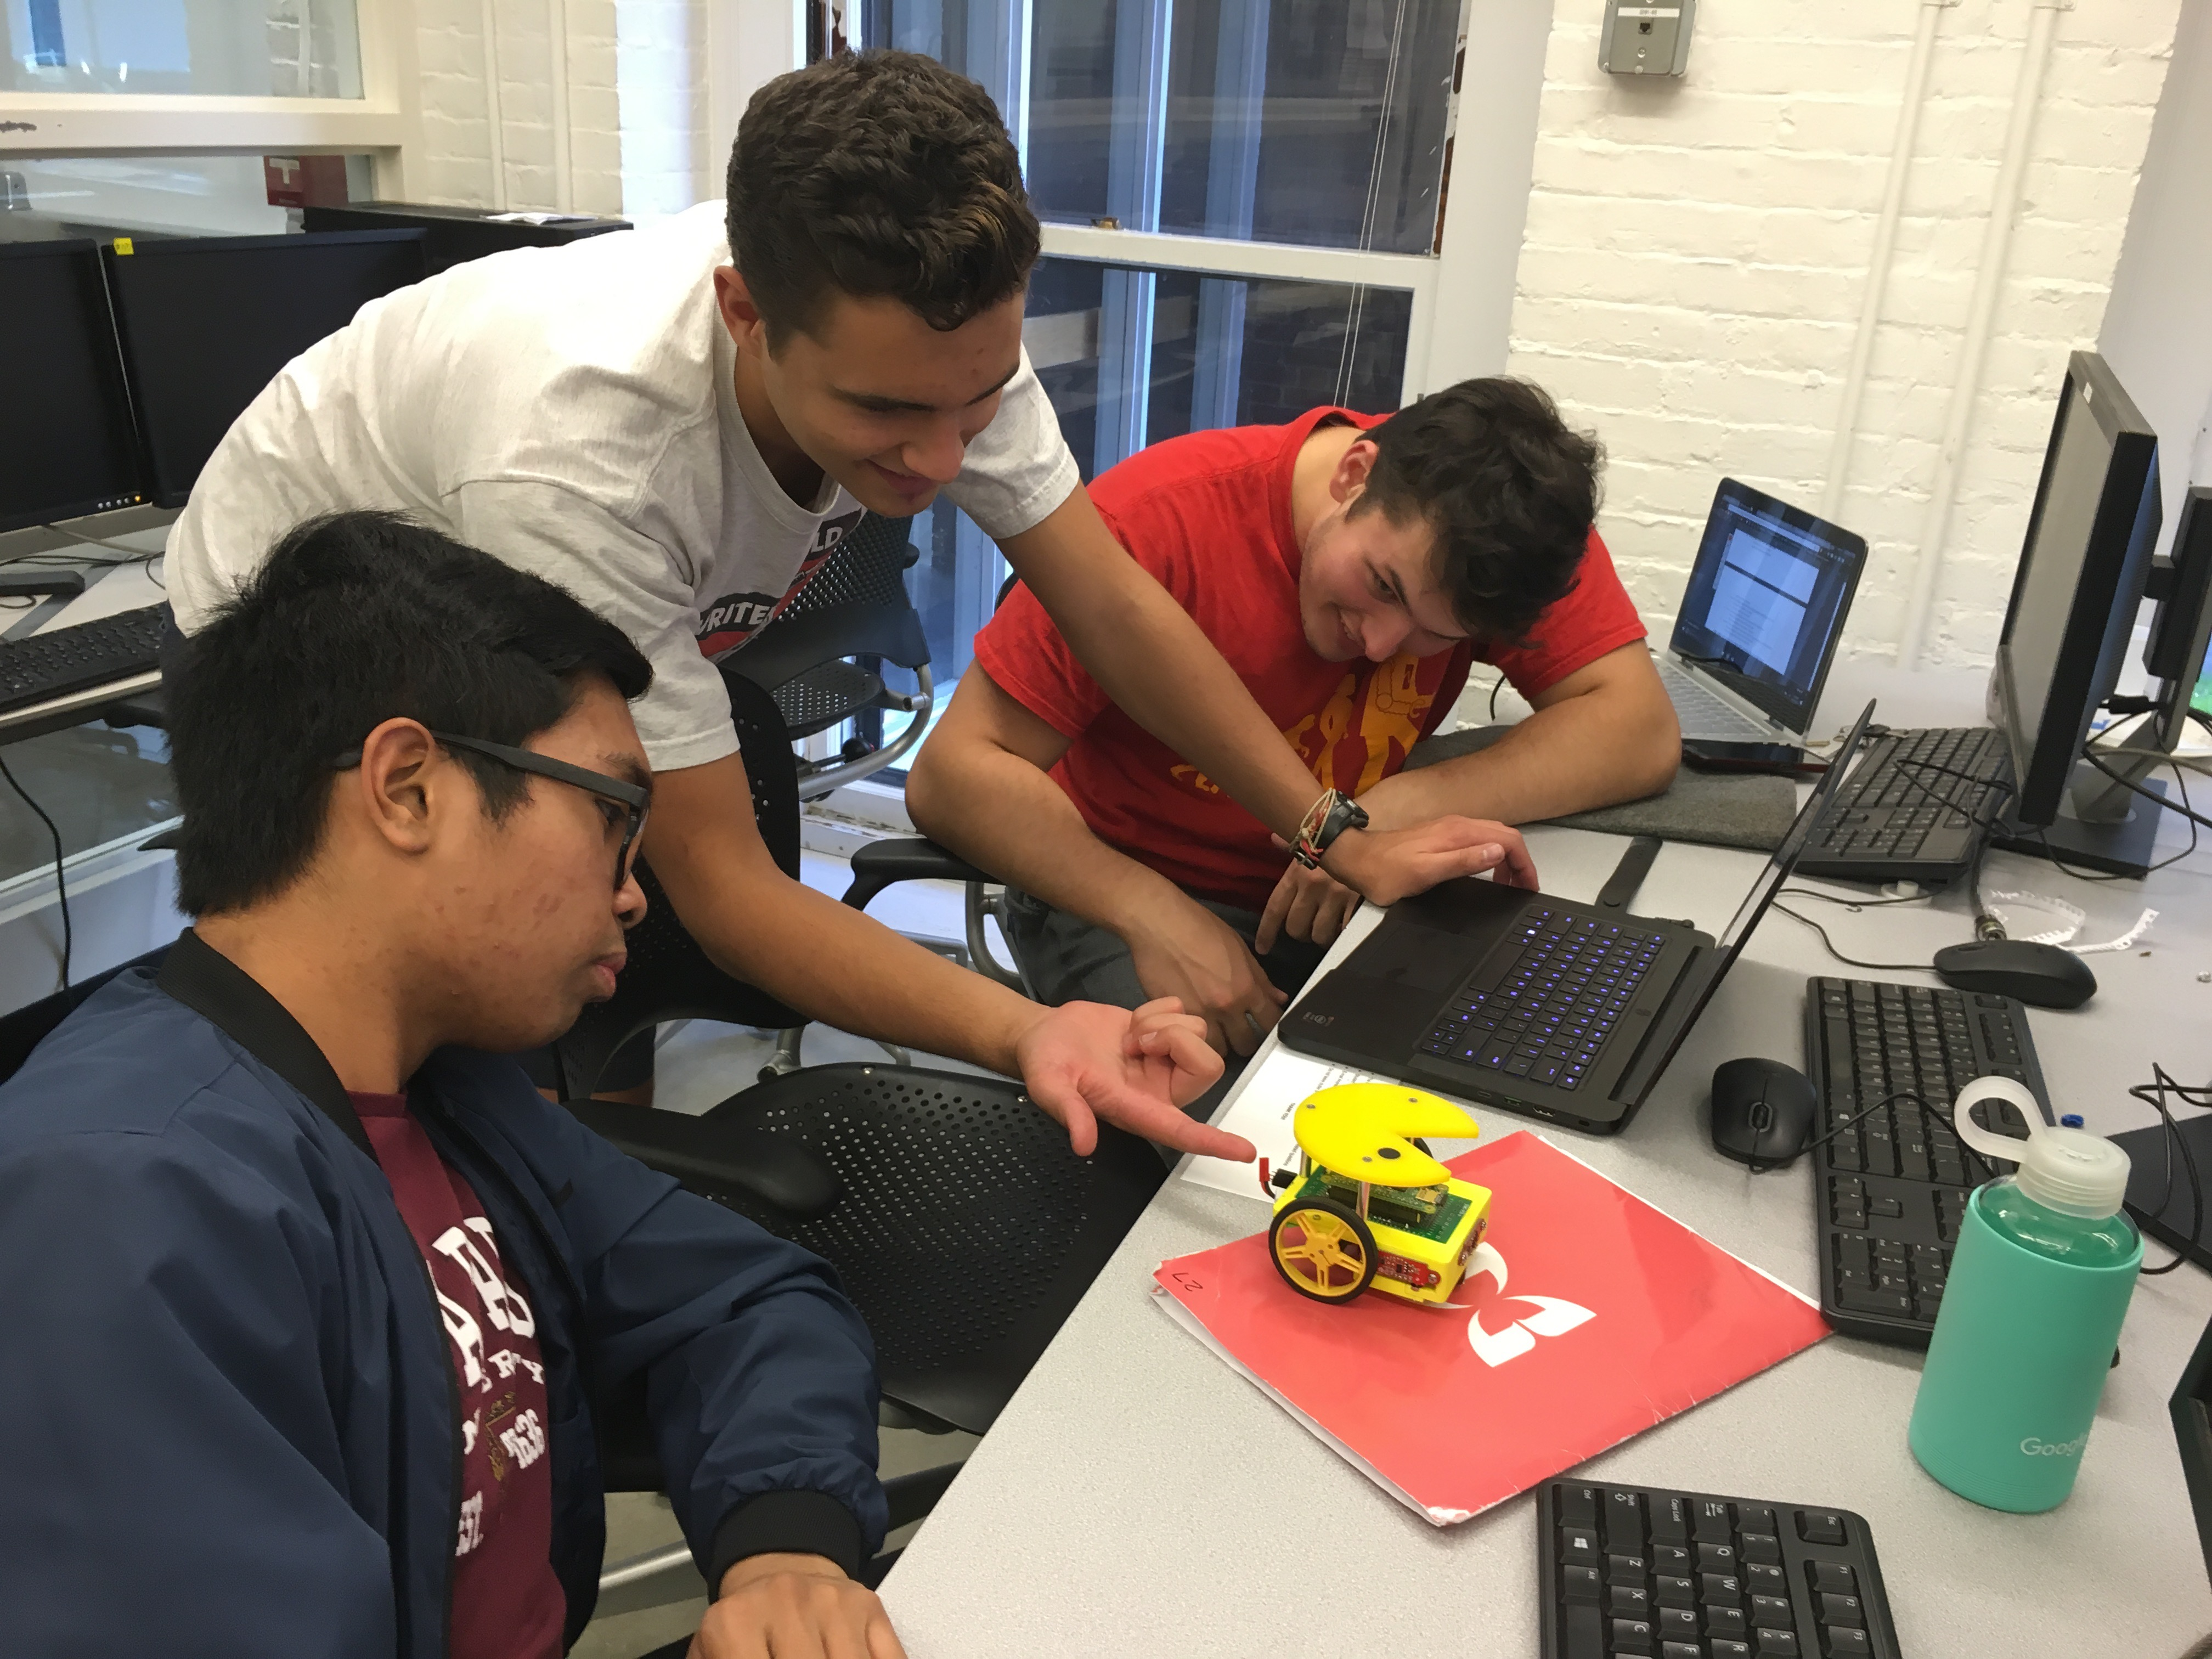 (From left) Freshman Robert Malate, Charlie Colt-Simonds, S.B. '20, an electrical engineering concentrator, and Andrew Meersand, S.B. '20, a mechanical engineering concentrator, inspecting the Pacbot robot. (Photo provided by HURC.)